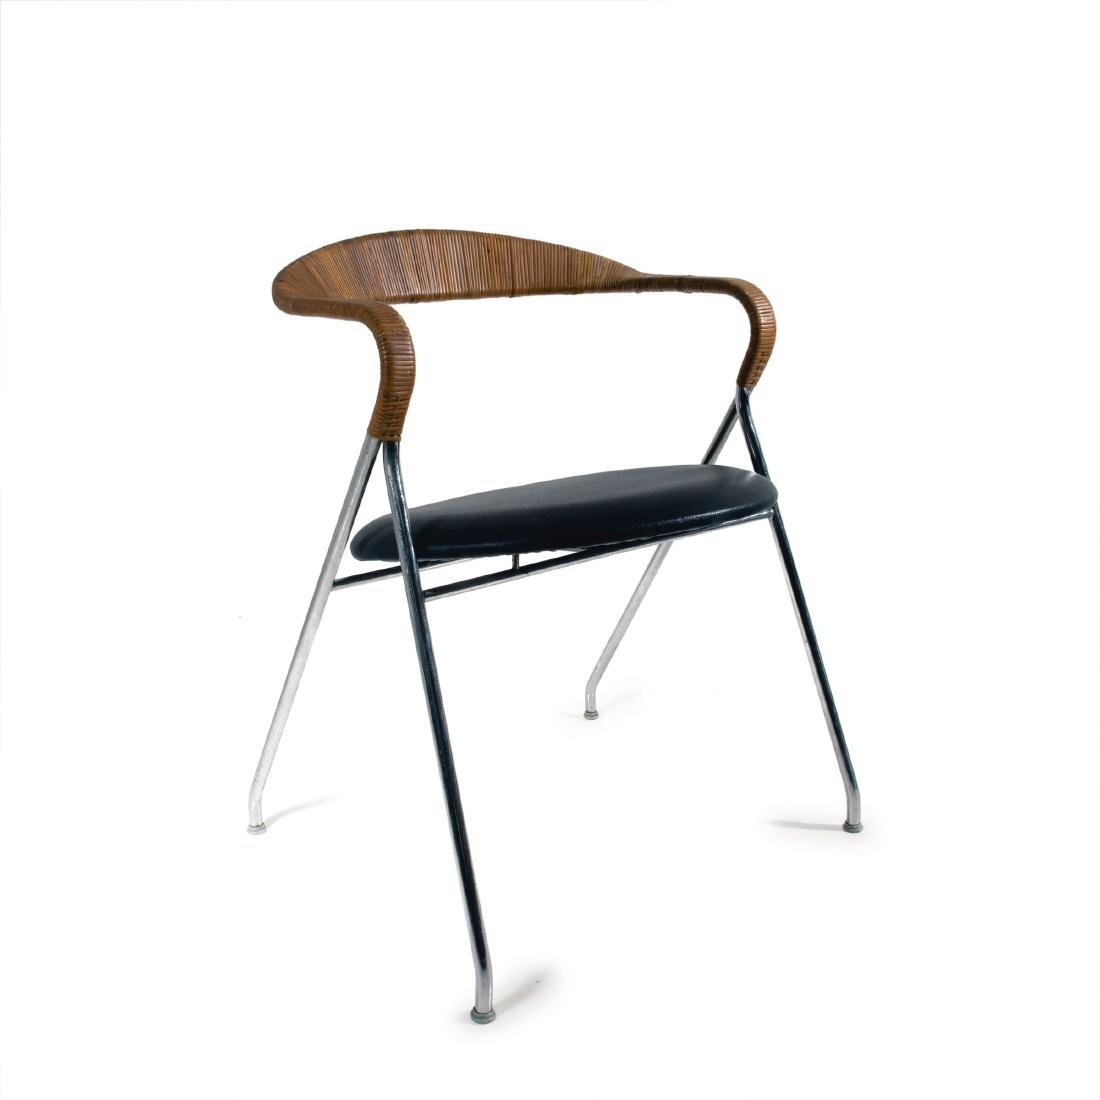 'Saffa' chair 'HE-103', 1955